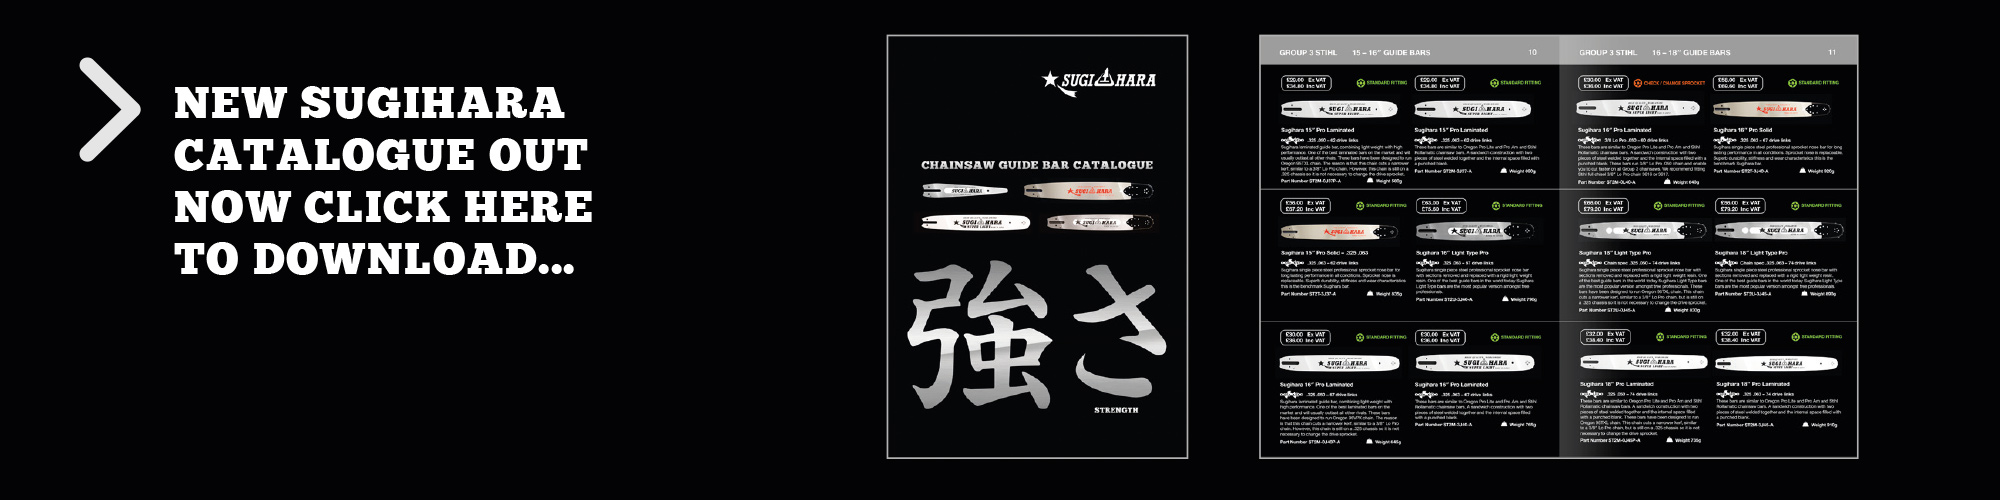 Sugihara chainsaw Guide bar Catalogue